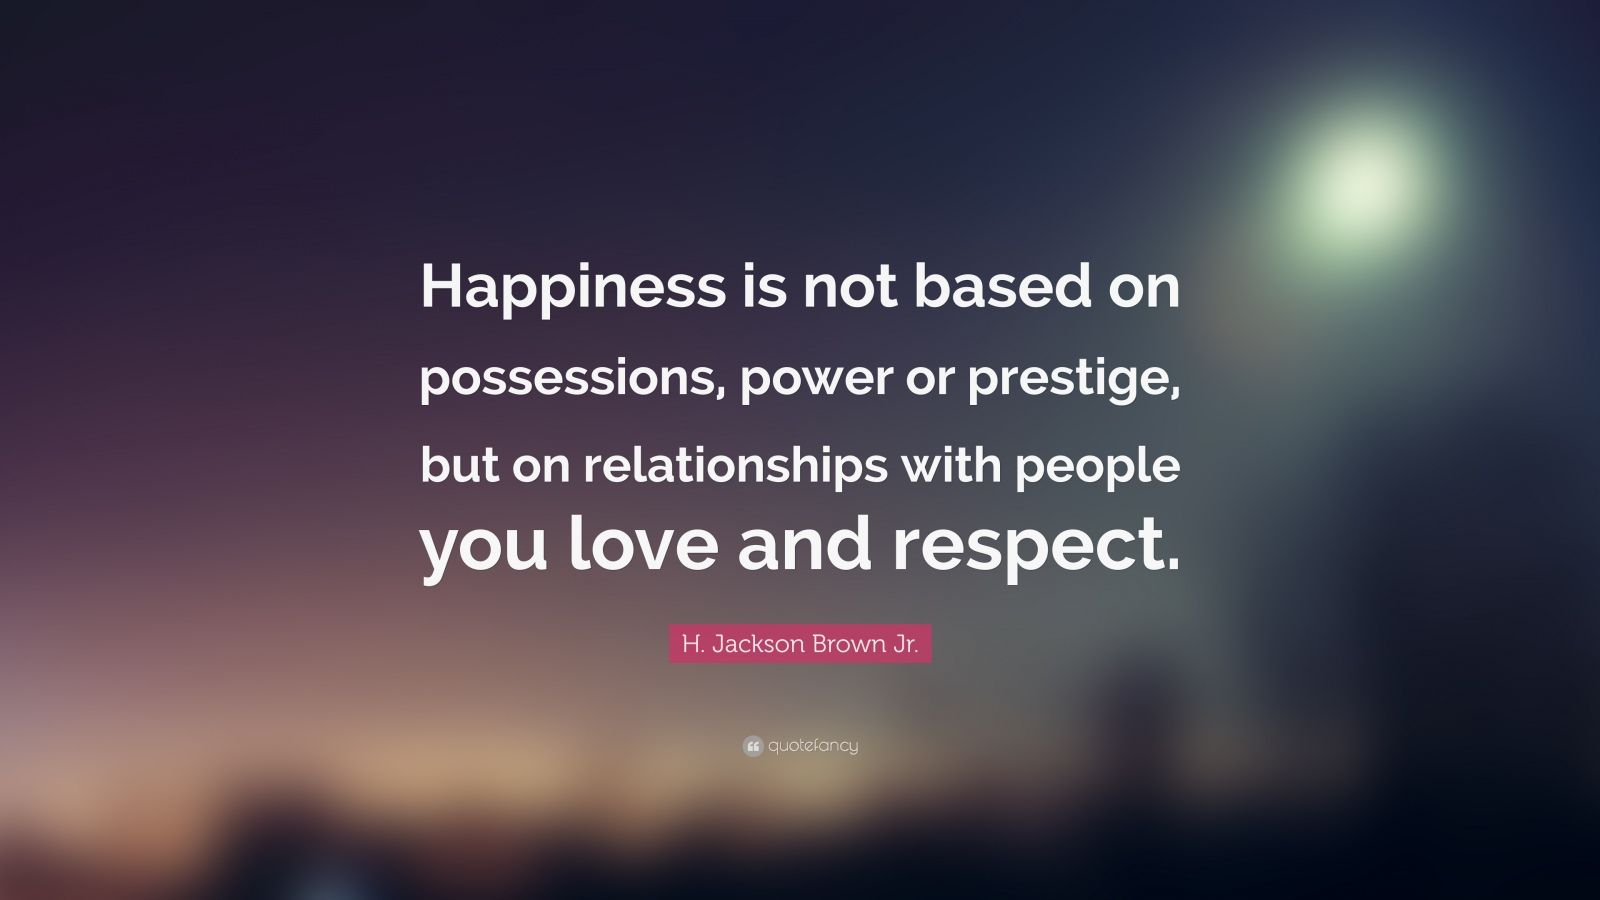 """H. Jackson Brown Jr. Quote: """"Happiness is not based on possessions, power or prestige, but on relationships with people you love and respect."""""""